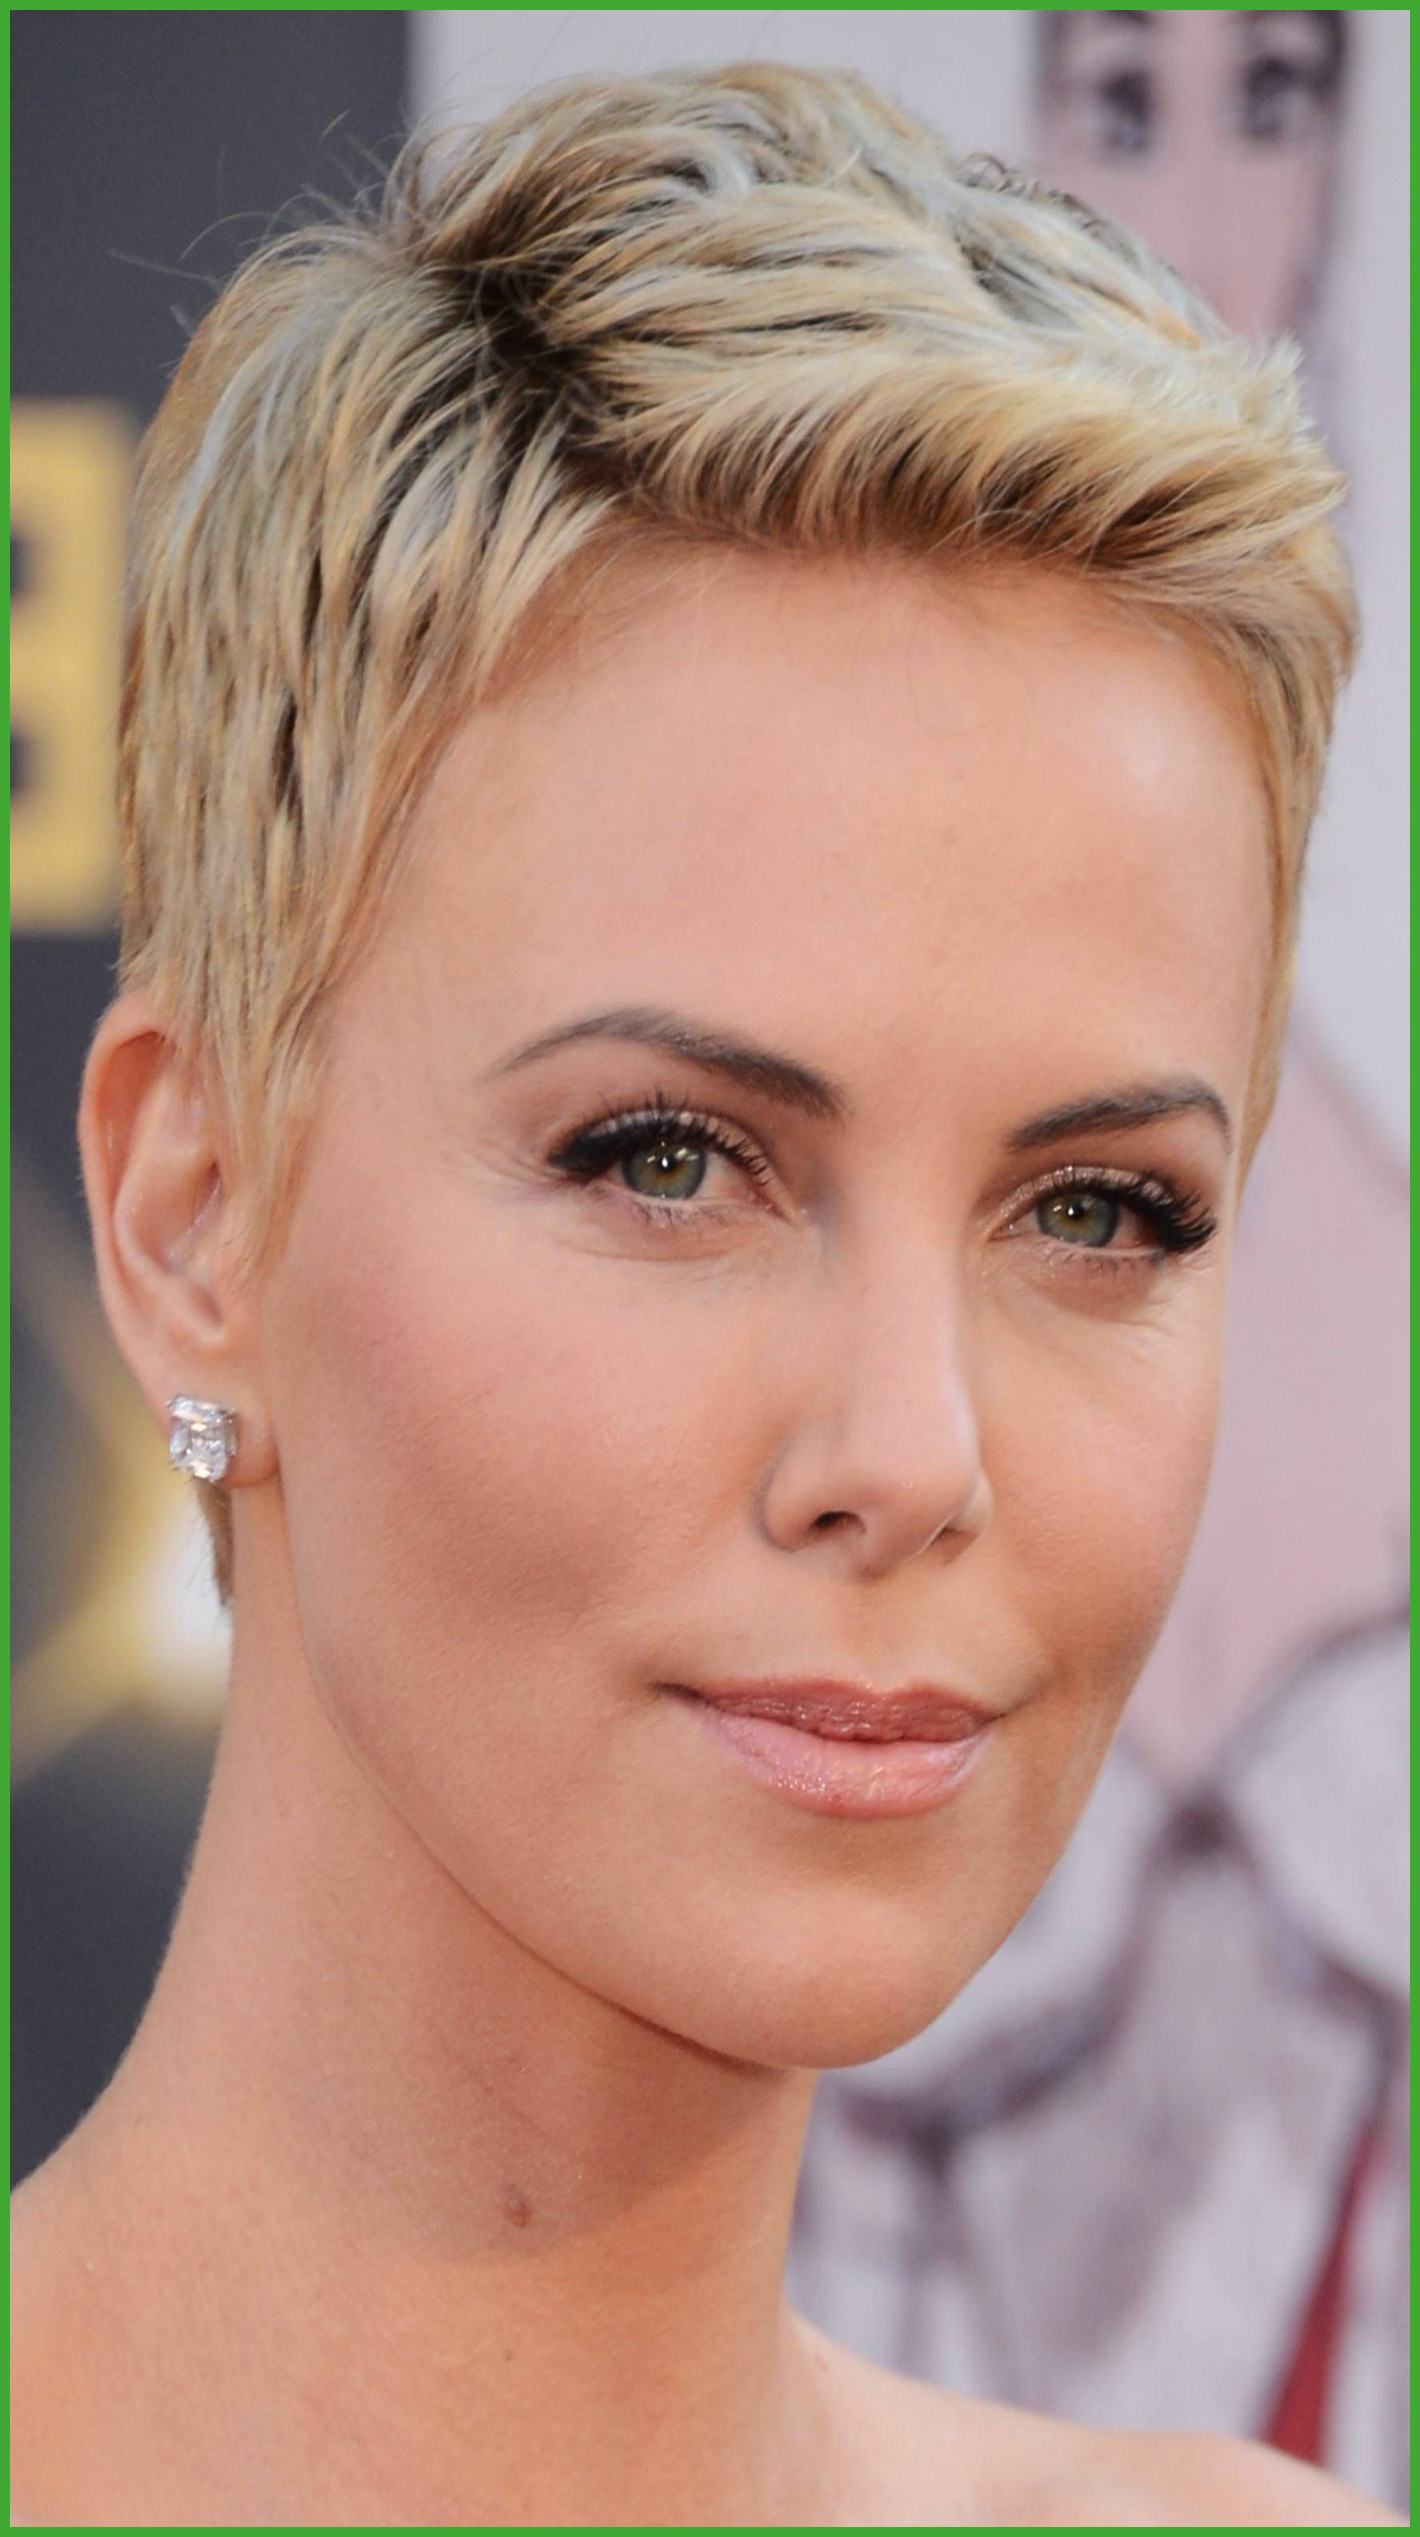 Fashion : Cute Haircuts For Curly Hair Captivating Pixie Cut Pertaining To Cute Curly Pixie Hairstyles (View 16 of 20)